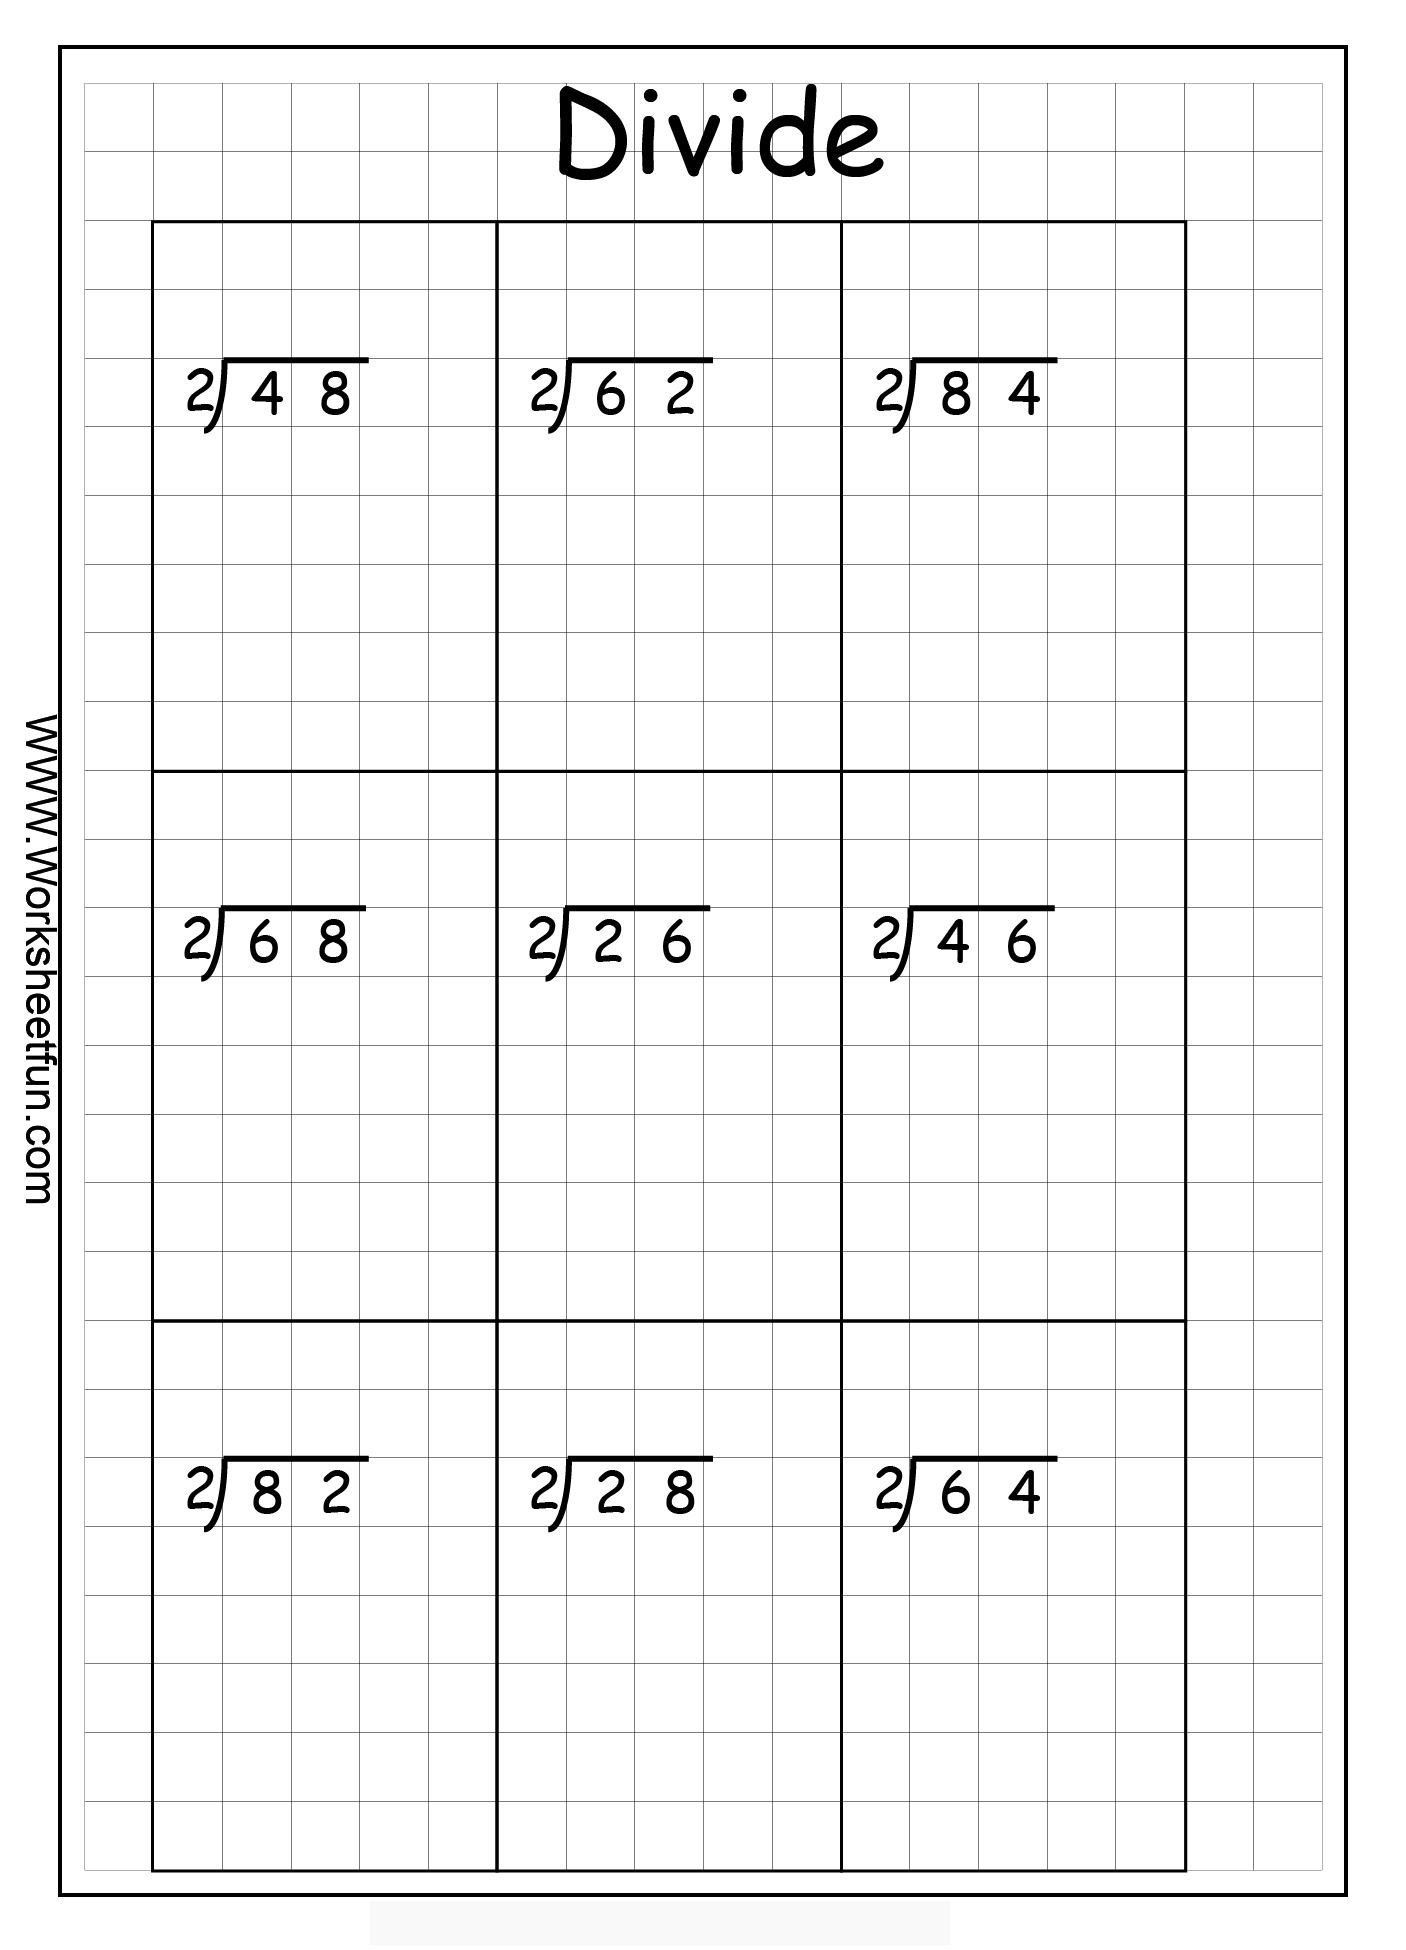 hight resolution of Long division homework help - Division worksheets for grades 3